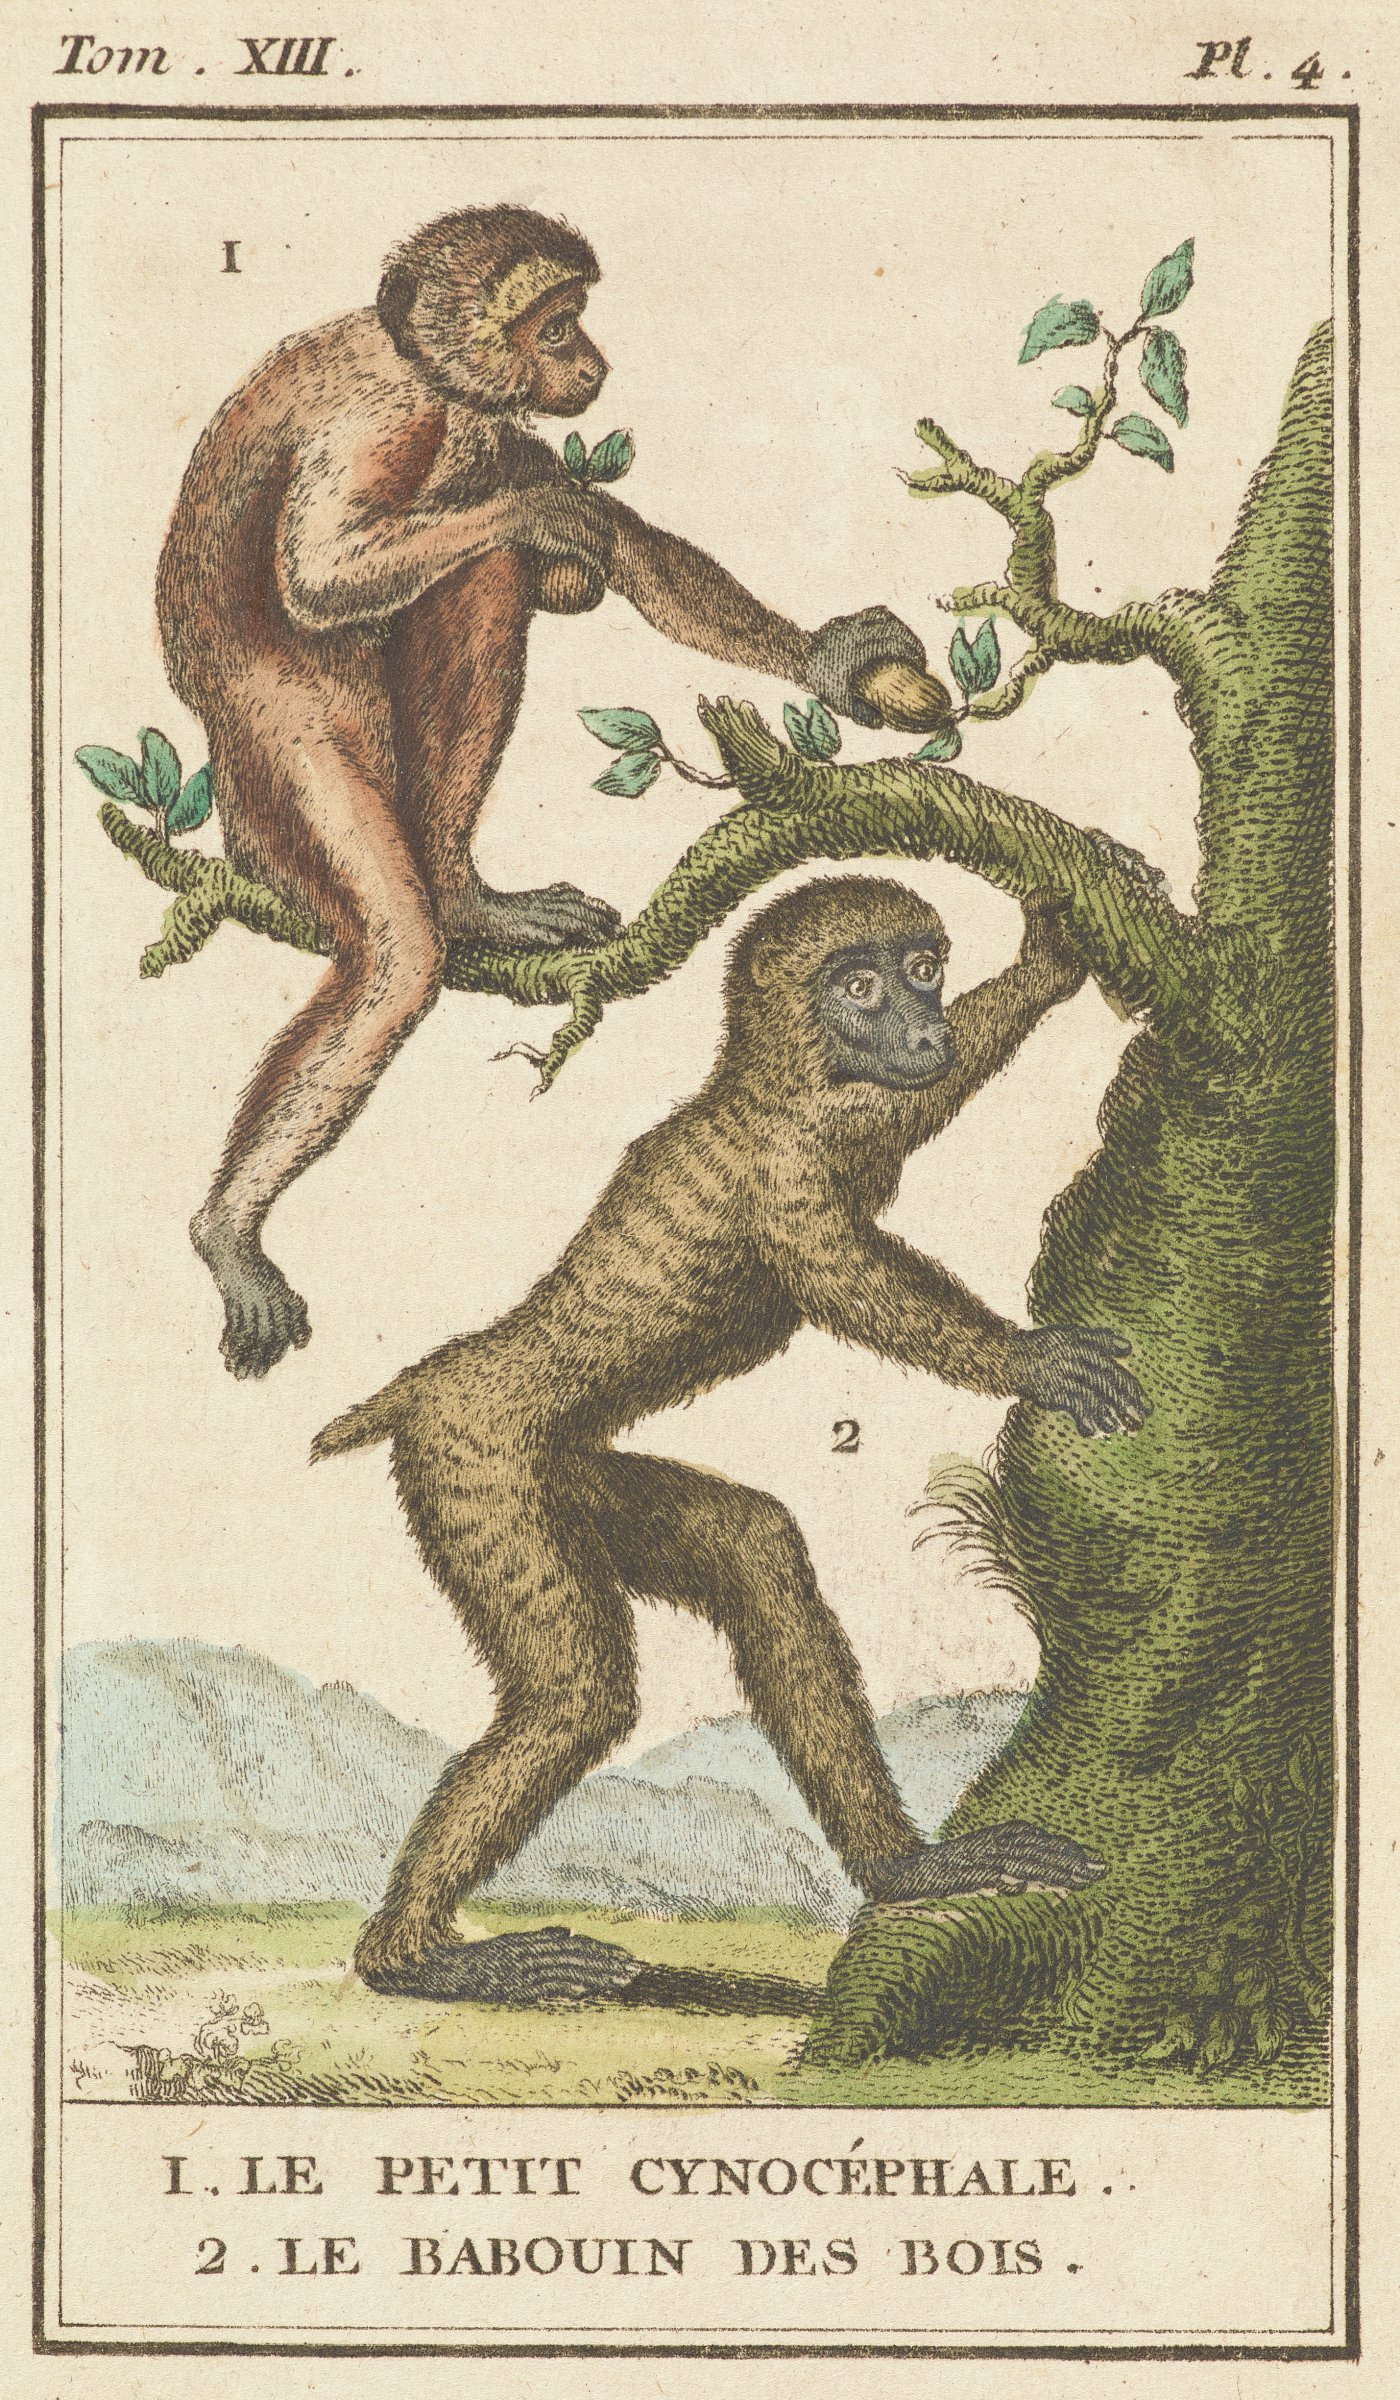 A monkey with a short tail is shown in profile with his head turned towards the viewer. He grabs onto a tree with his left arm. Another monkey is seen in profile siting on a tree limb grabbing fruit from a branch.